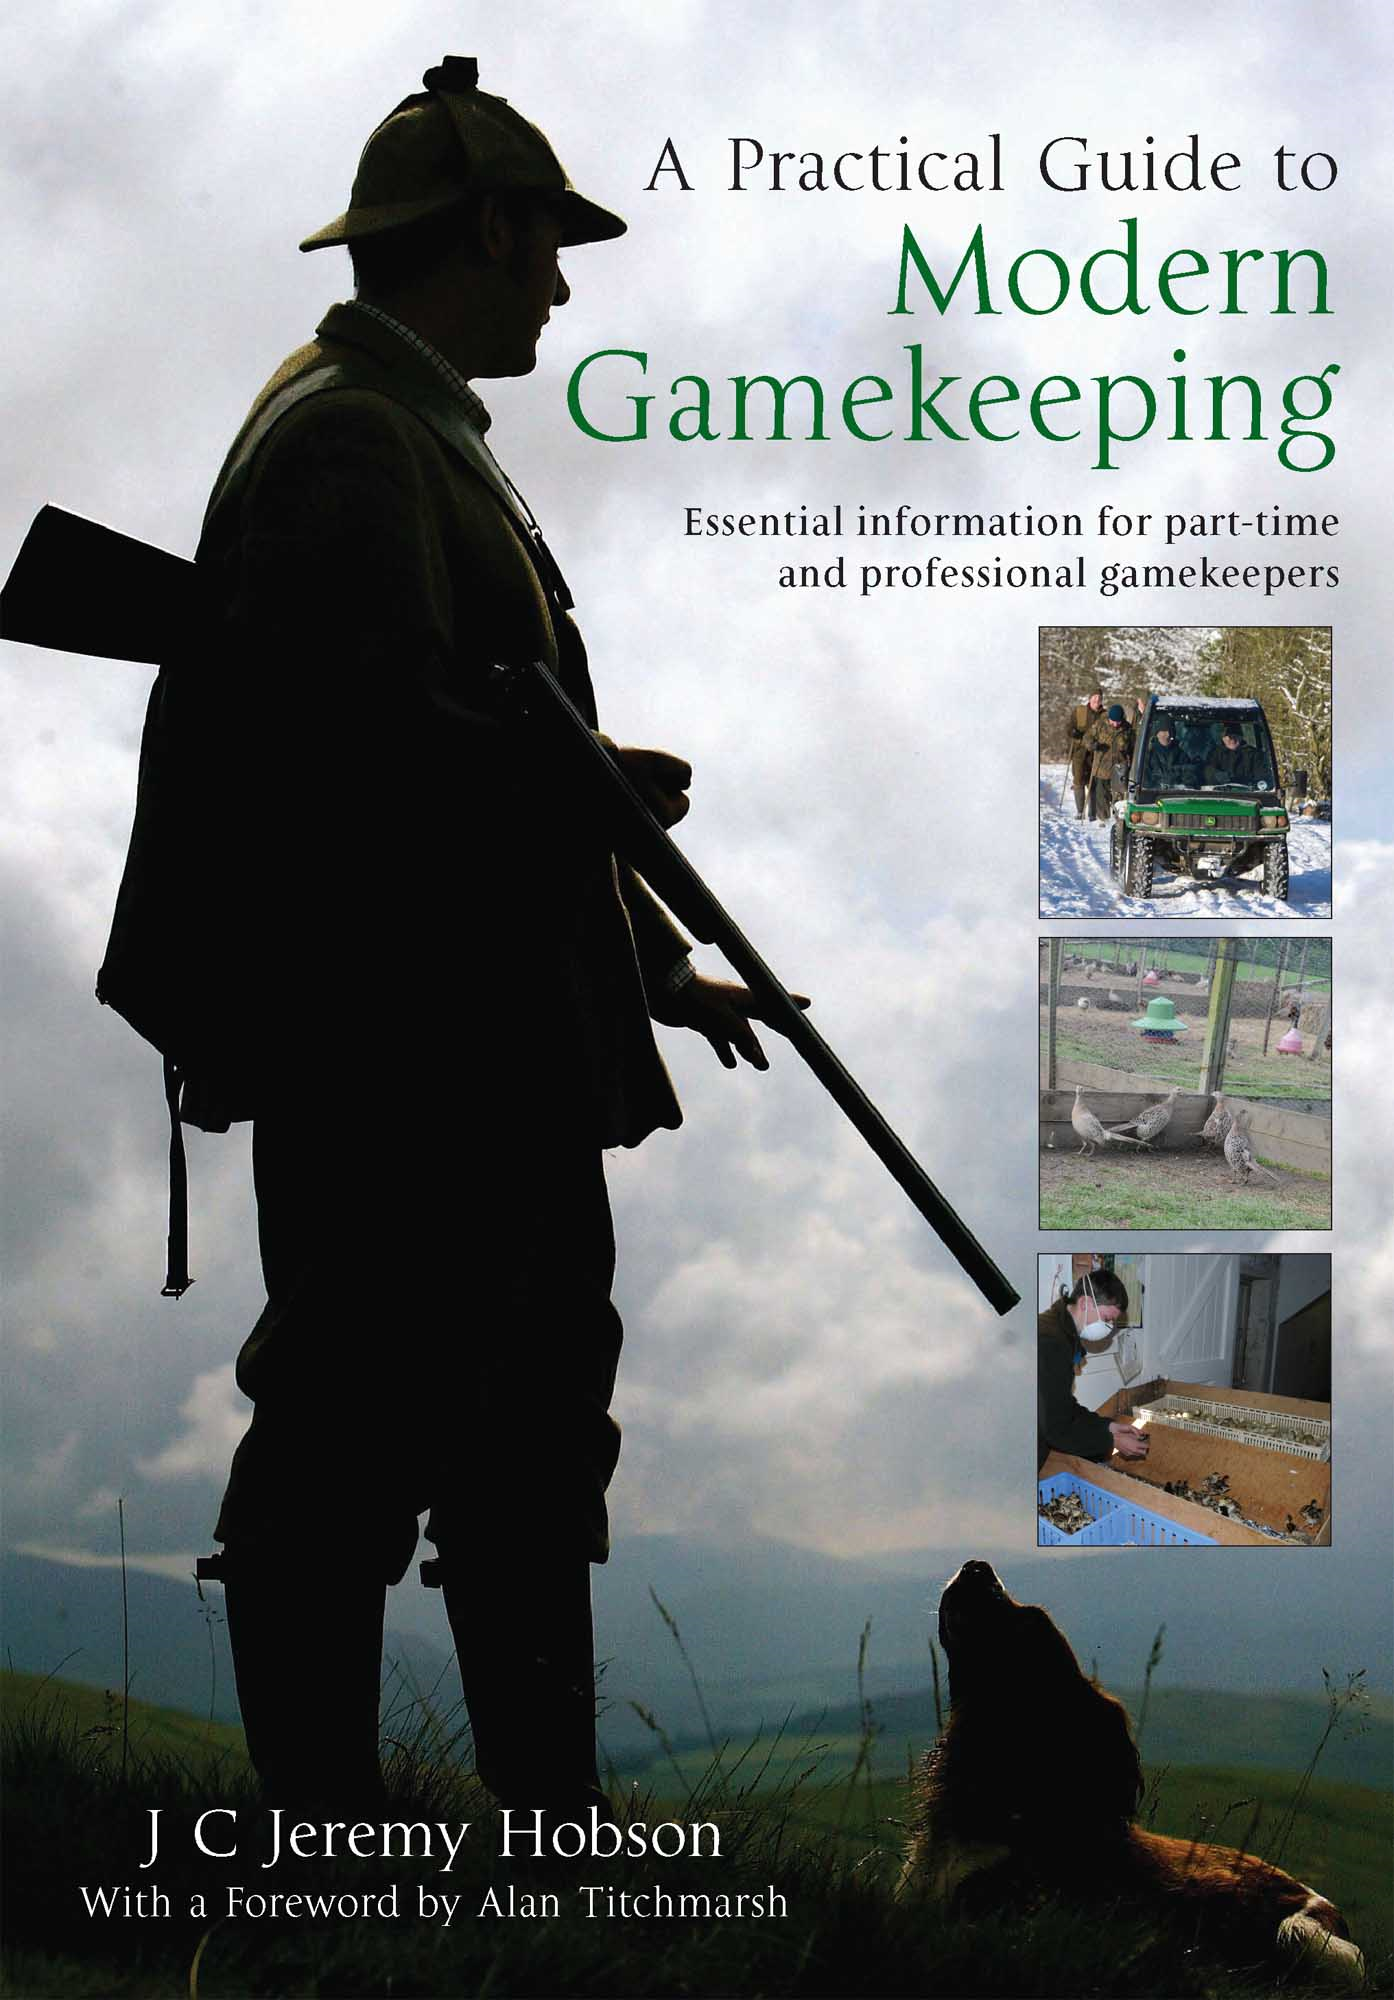 A Practical Guide to Modern Gamekeeping